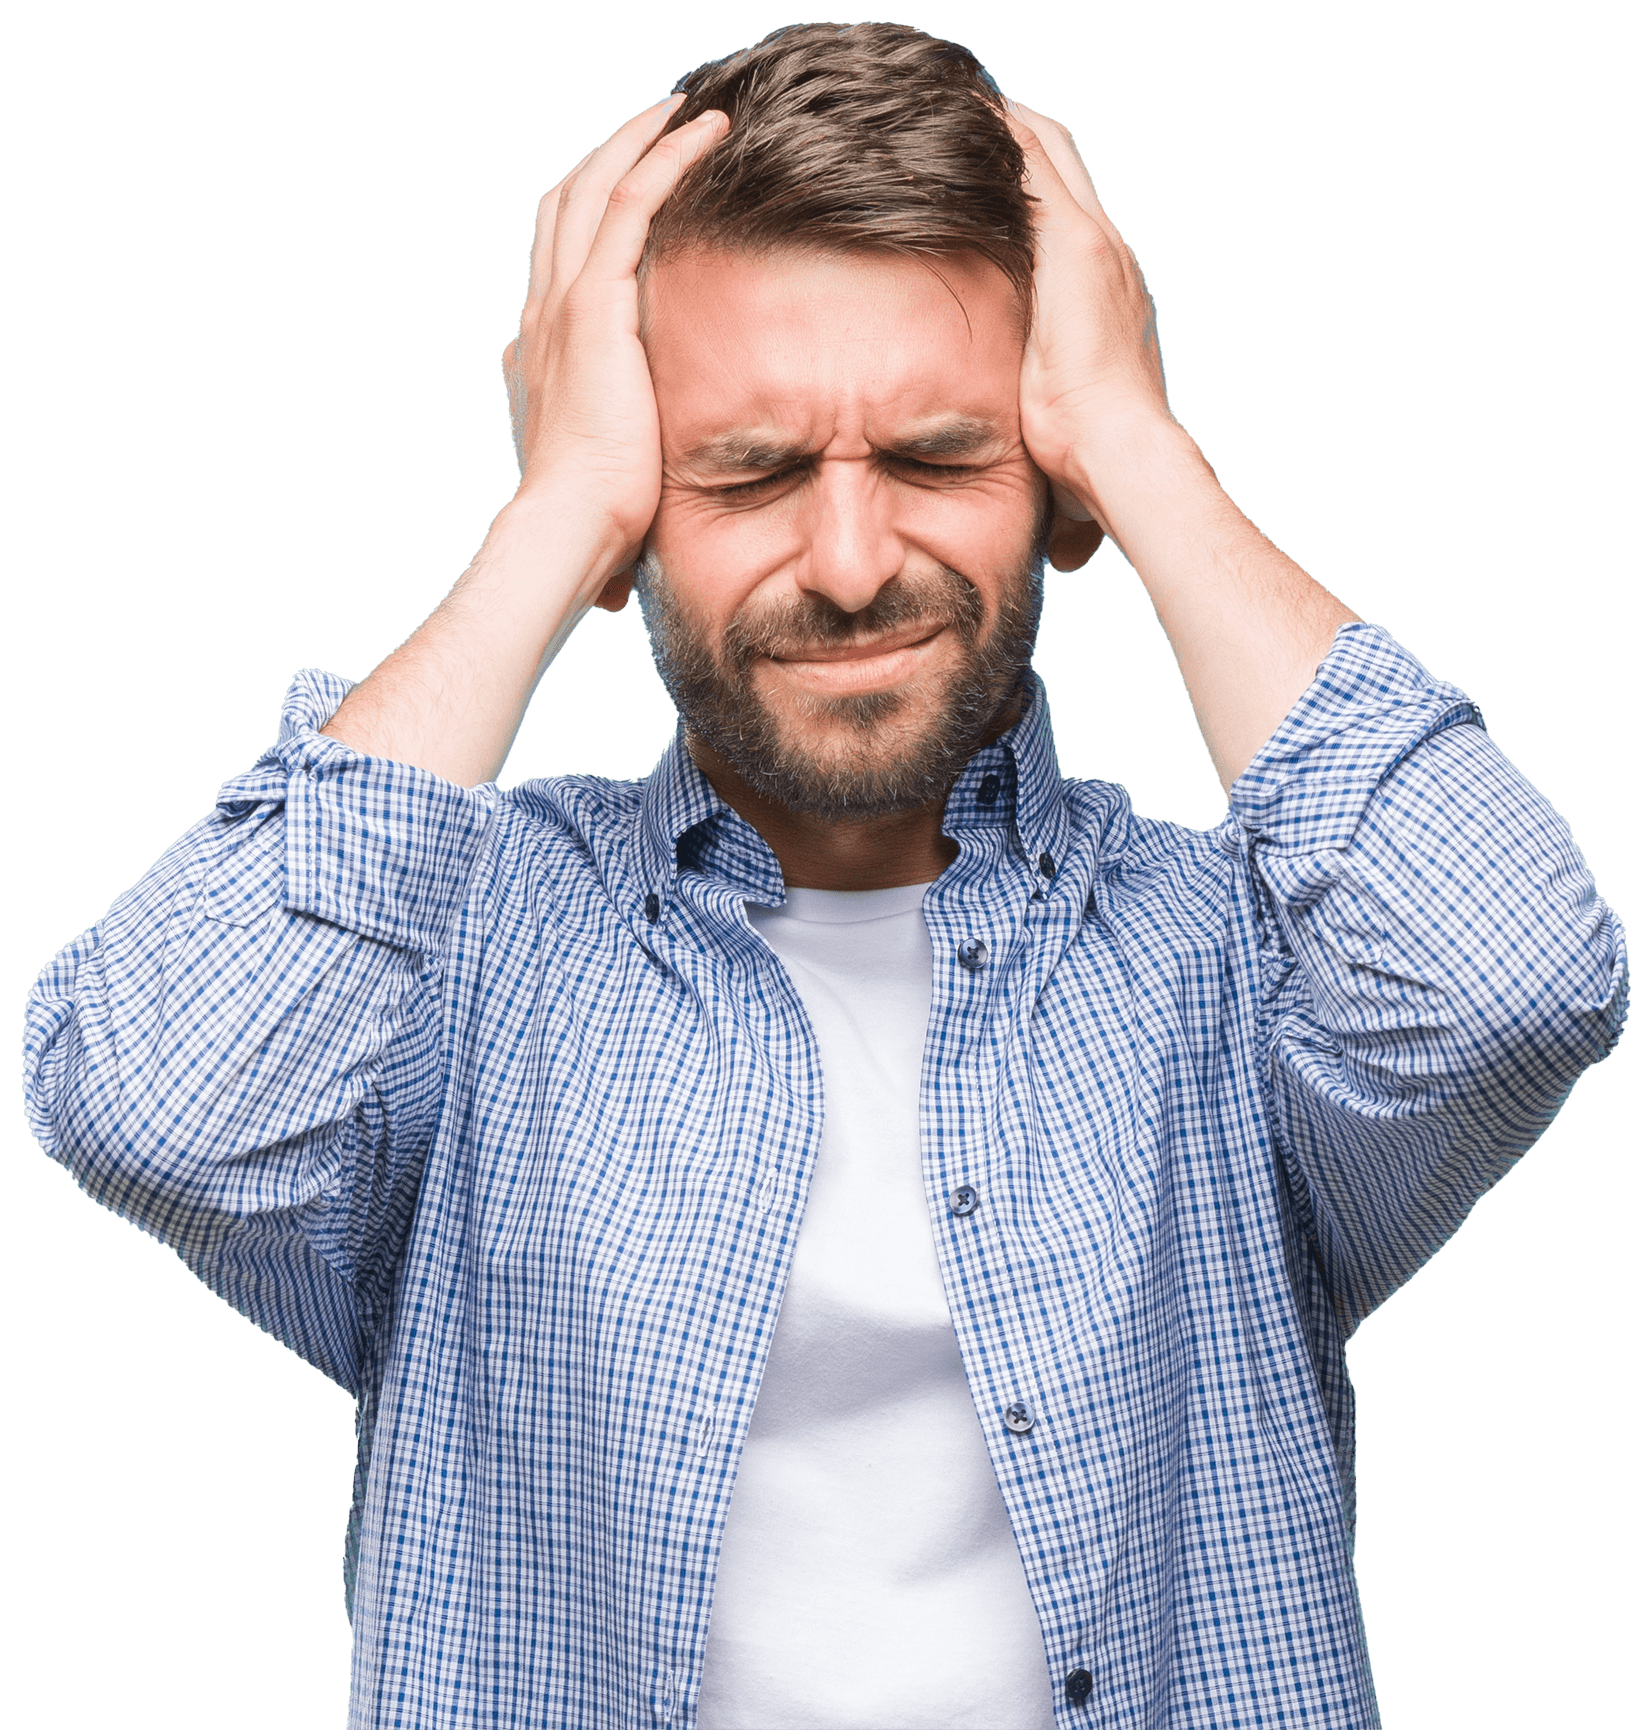 Man Frustrated Holding HIs Head